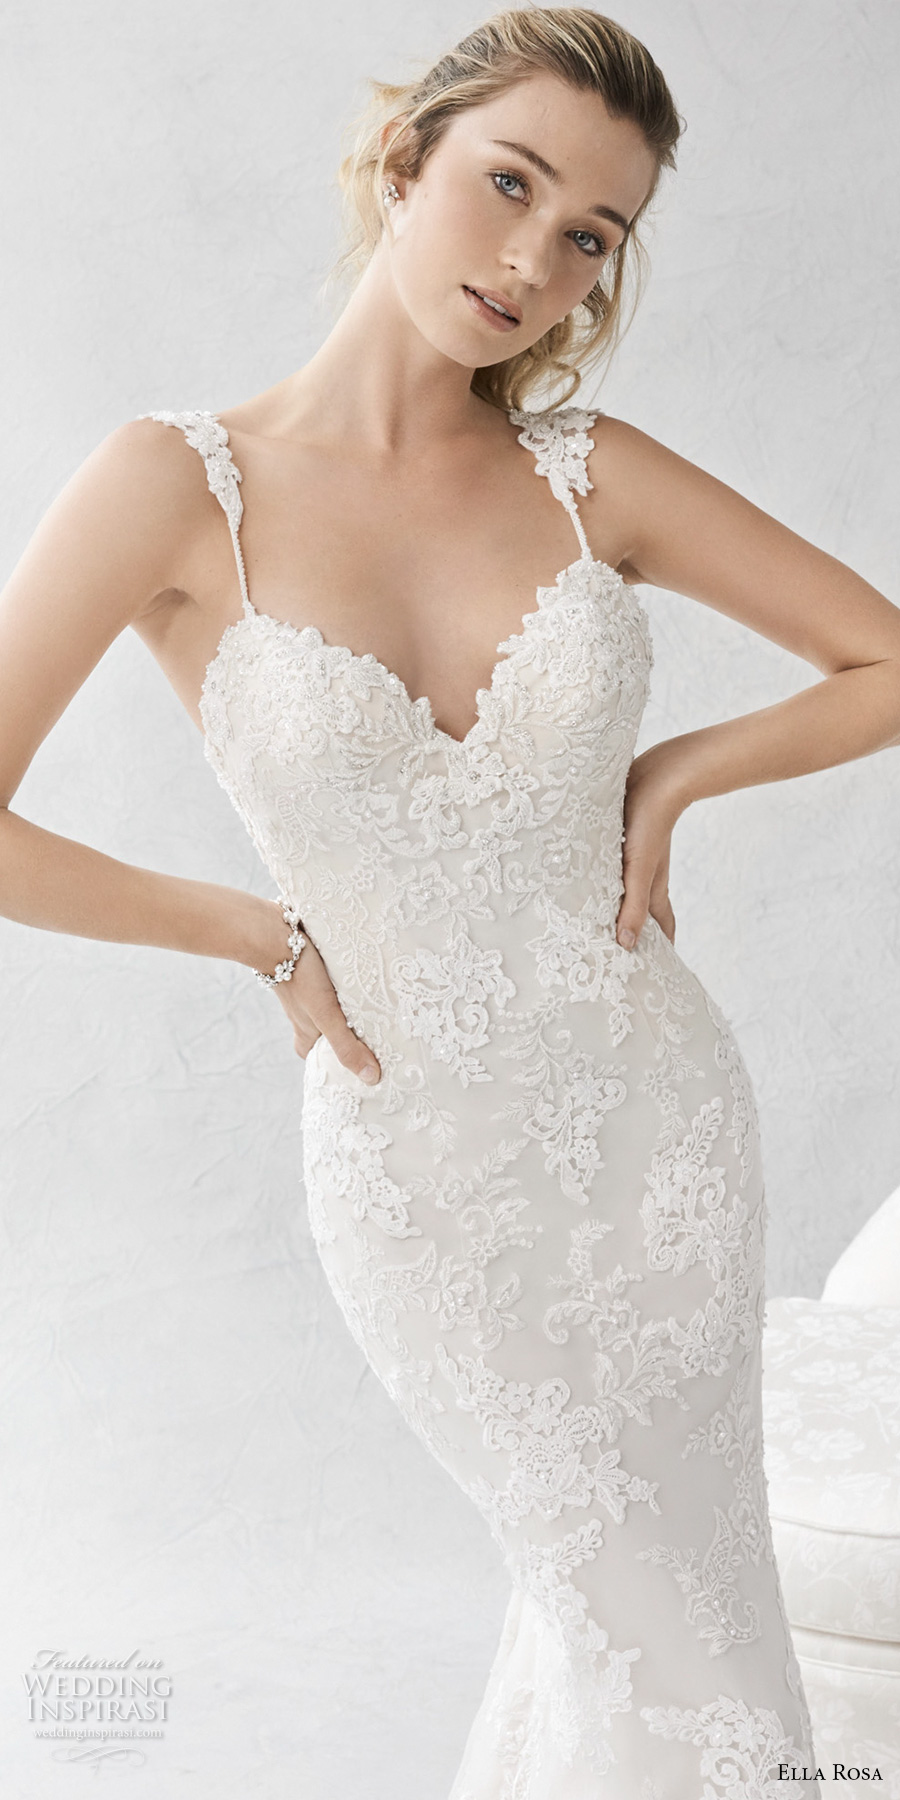 ella rosa spring 2017 bridal sleeveless embroidered strap sweetheart neckline full embellishment elegant fit and flare wedding dress open back small train (384) zv